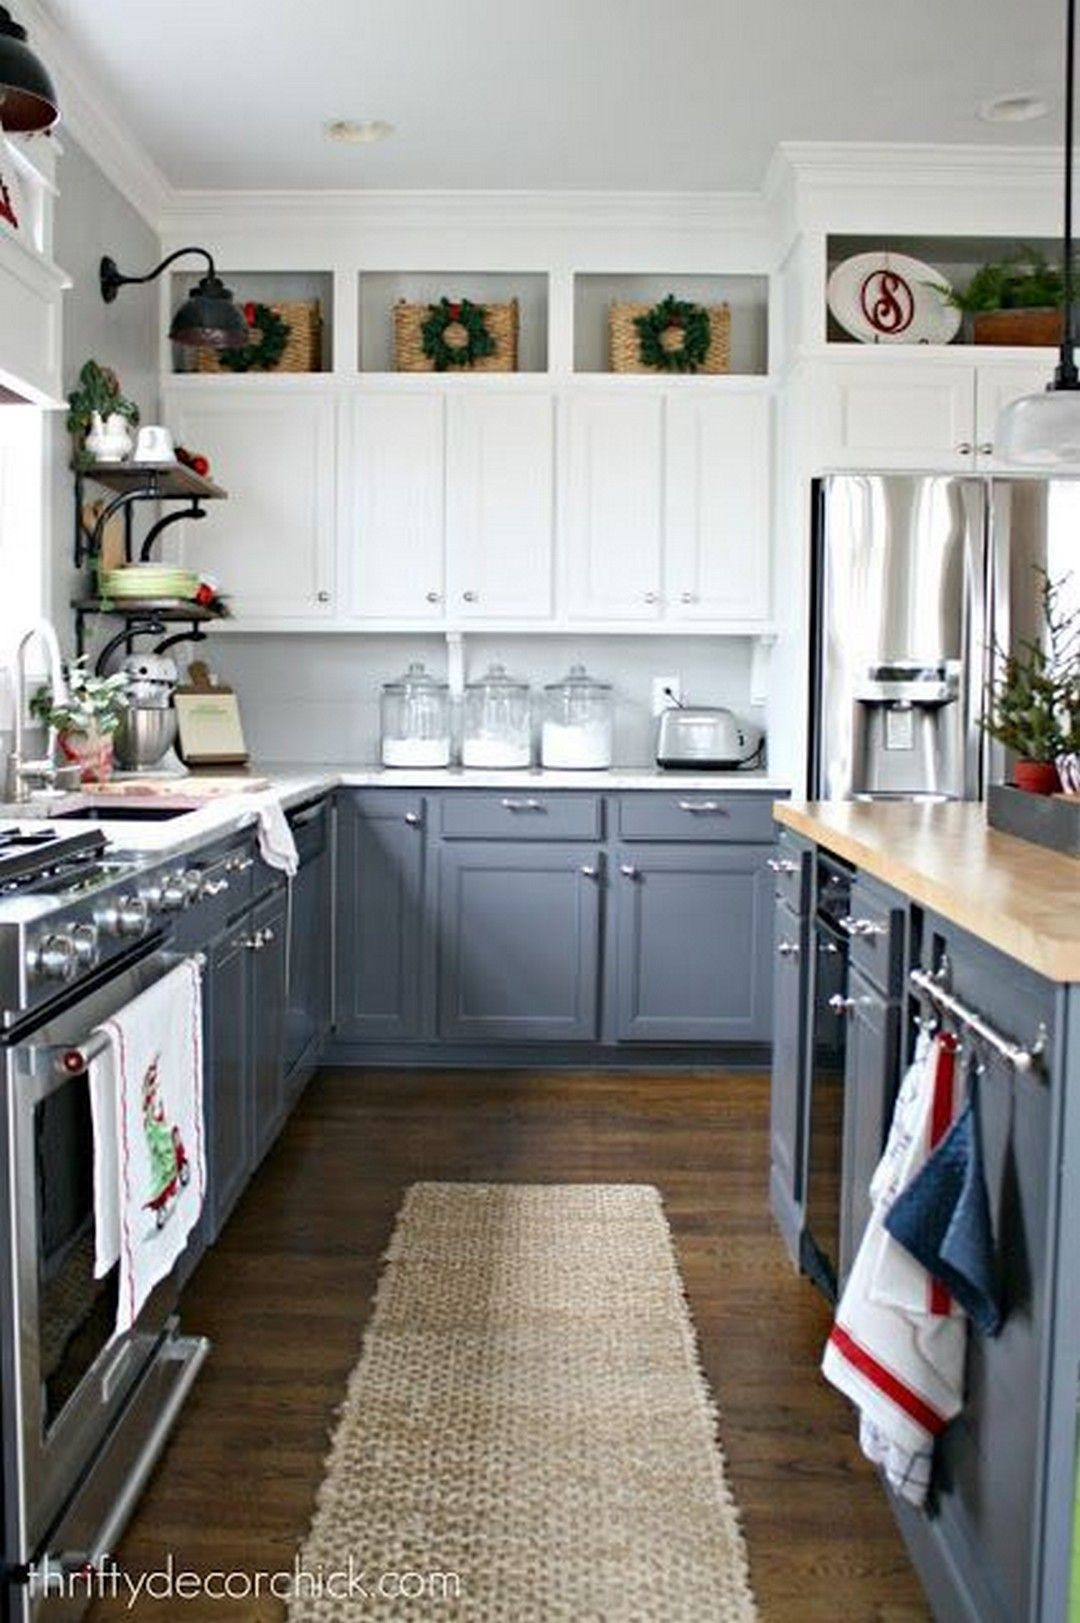 Learn How To Raise Kitchen Cabinets To The Ceiling And Add ...